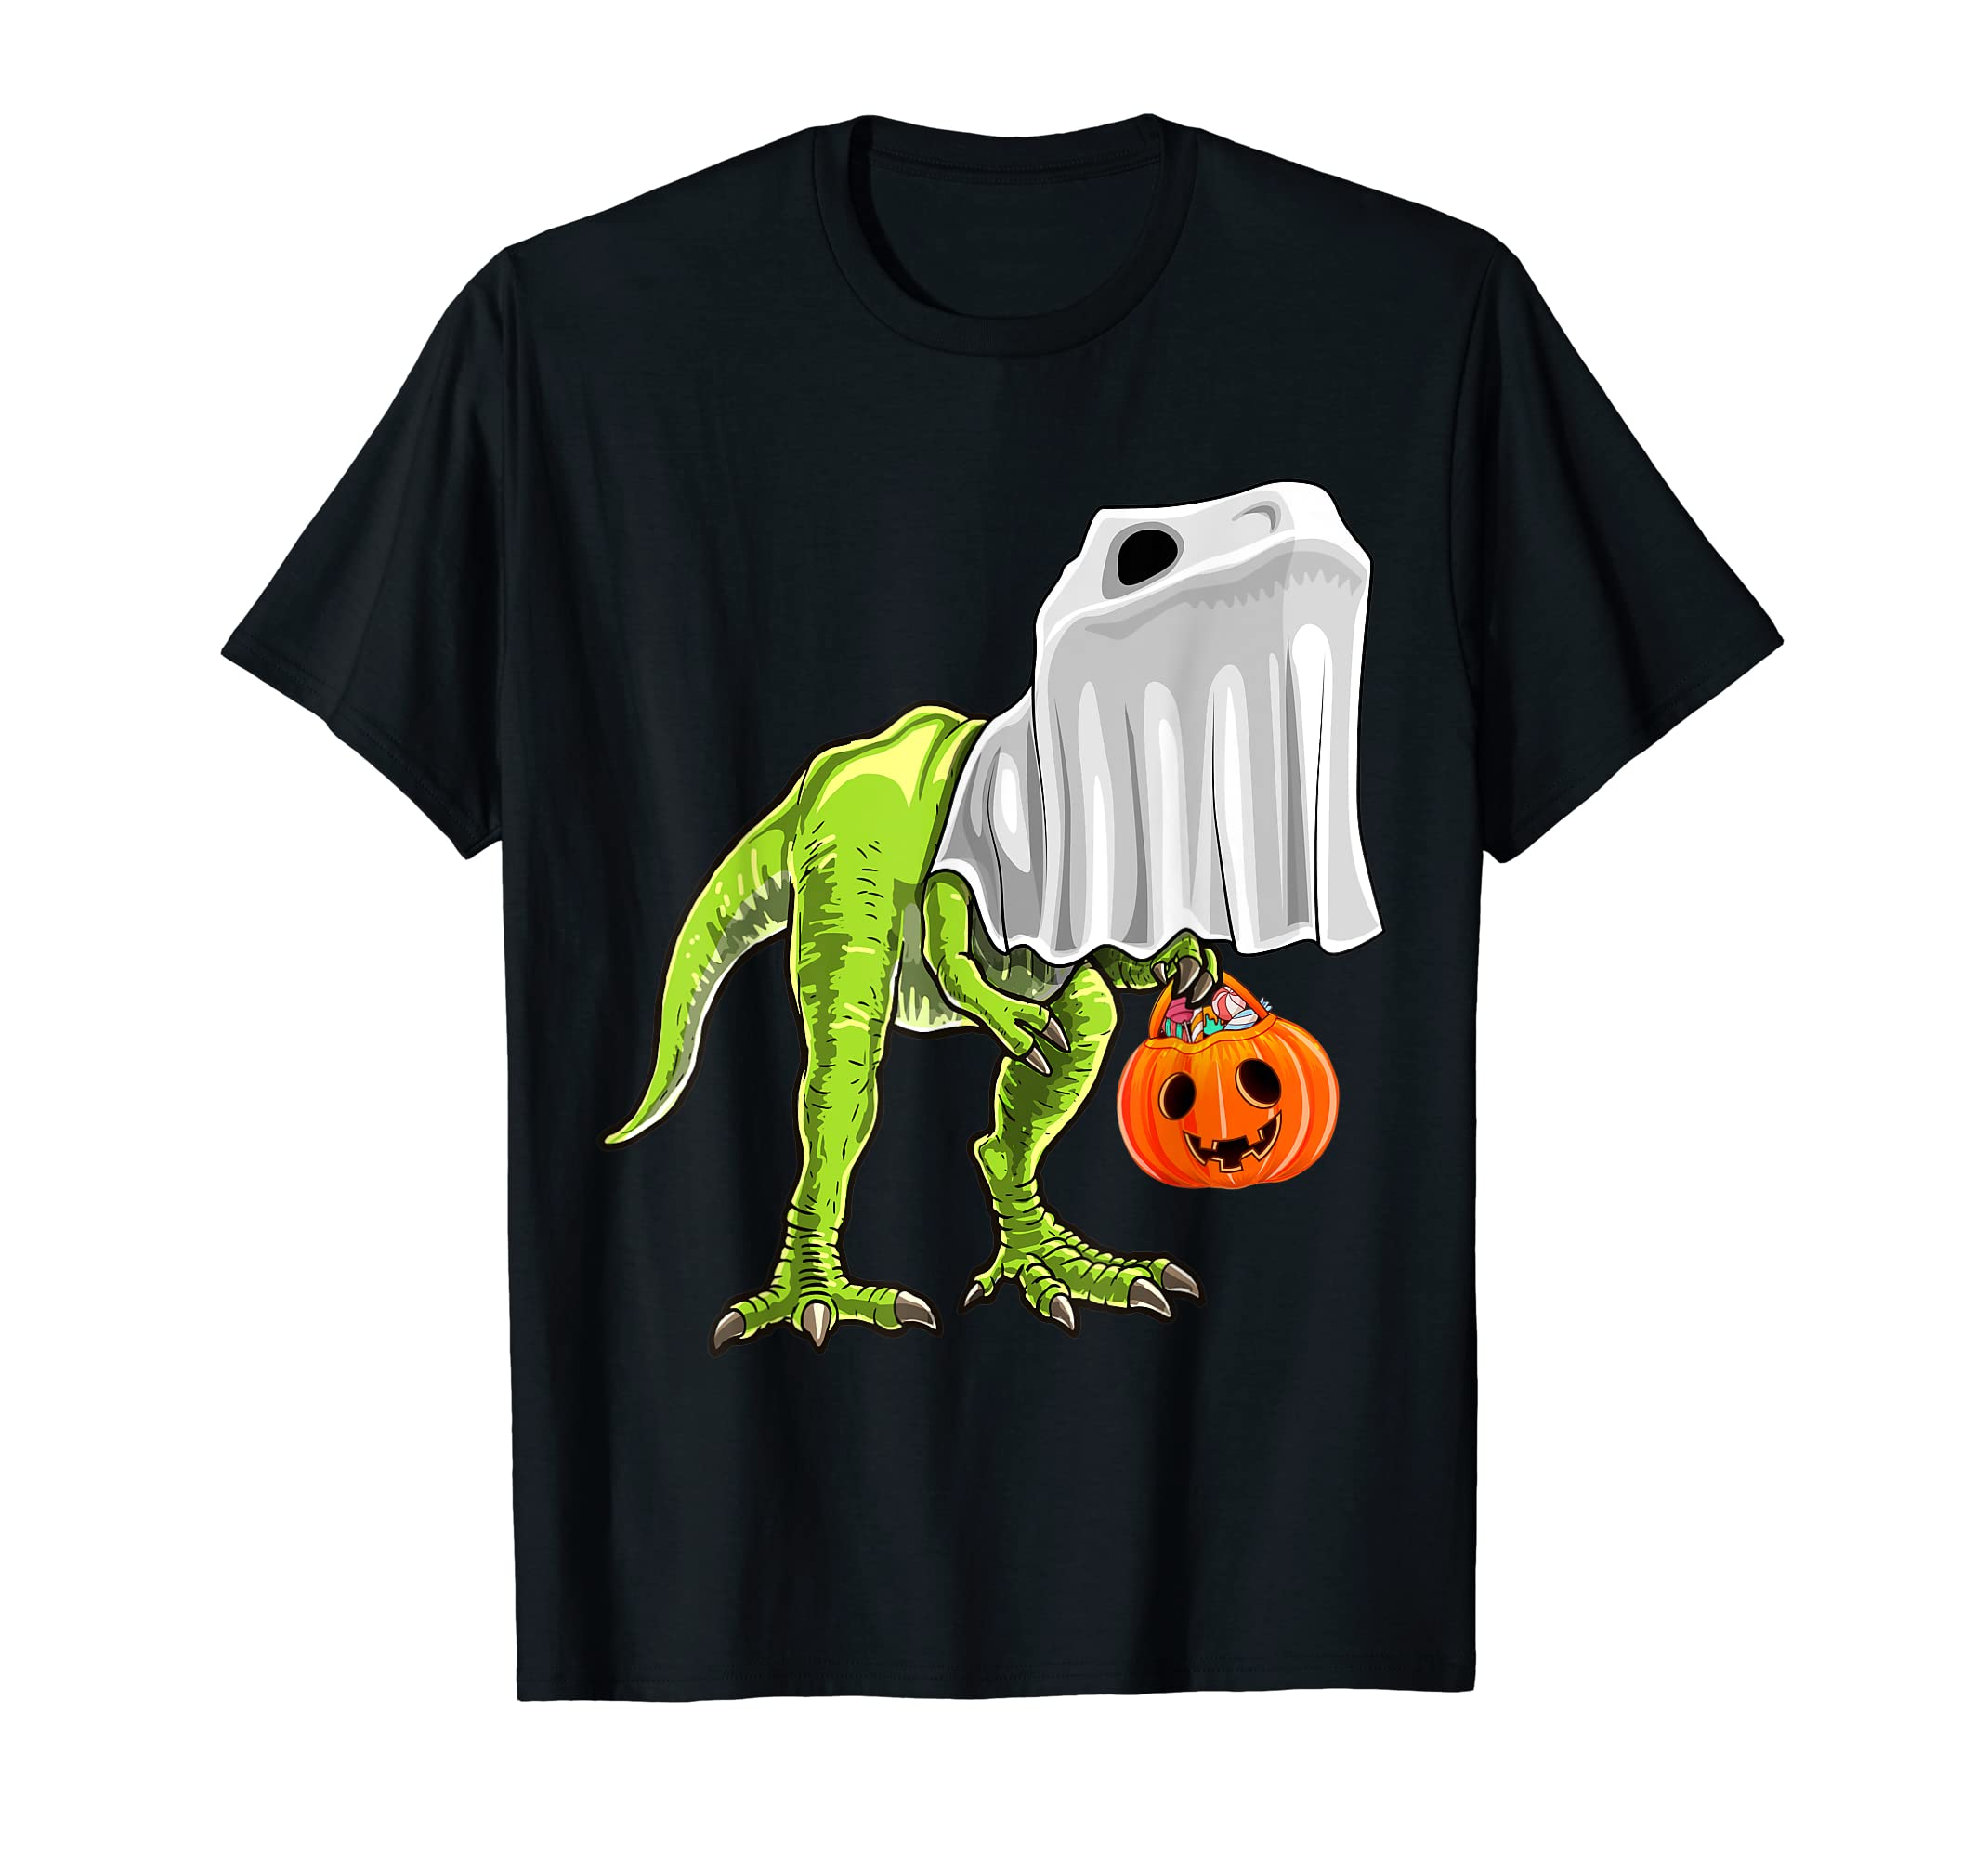 Halloween T Rex Dinosaur Ghost Trick or Treat Shirt Kids-Men's T-Shirt-Black